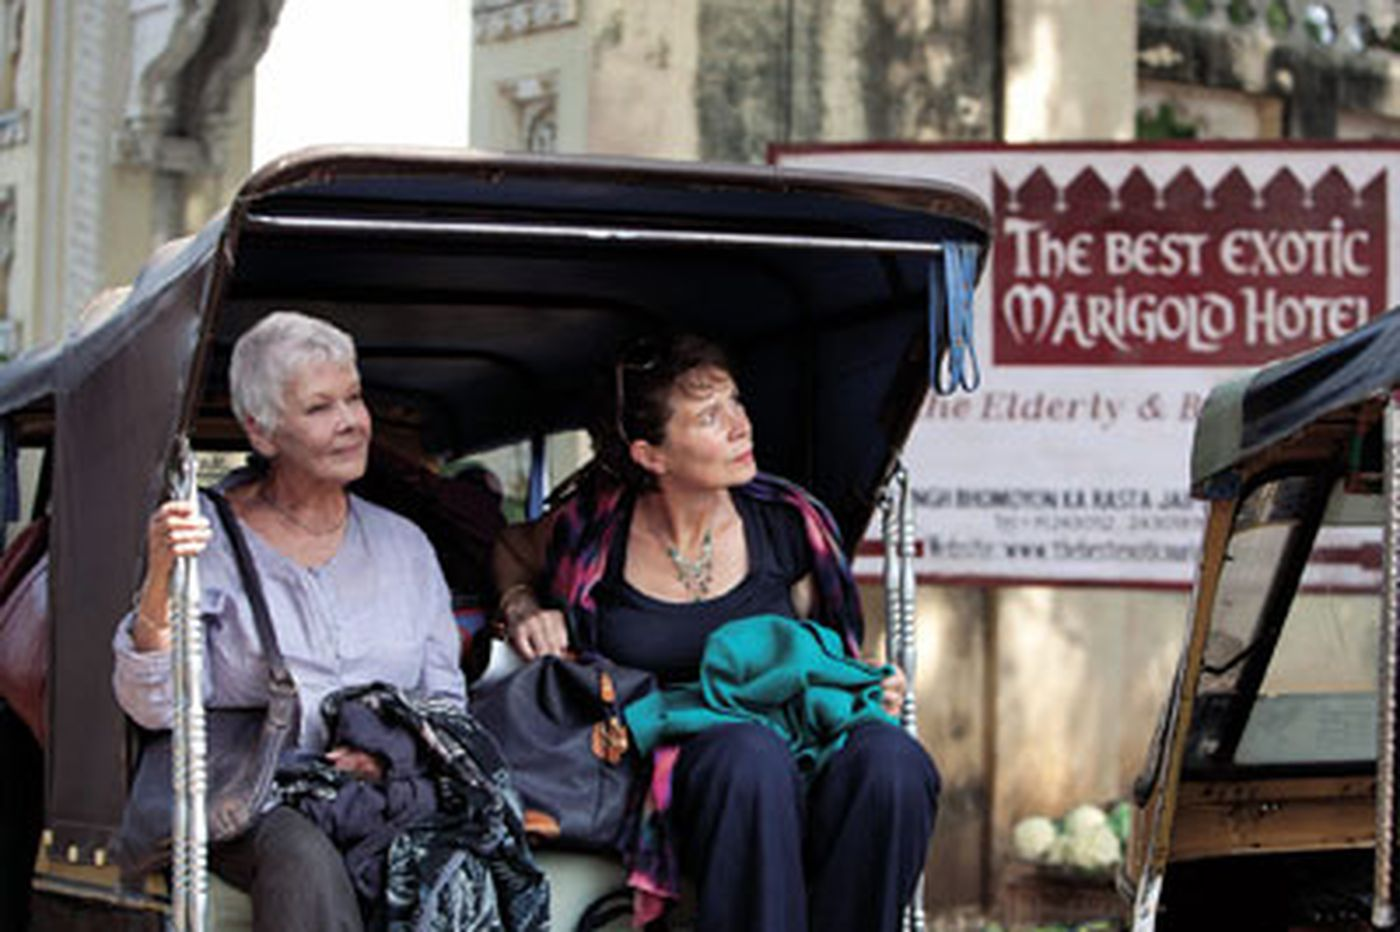 'The Best Exotic Marigold Hotel': Retirees collide